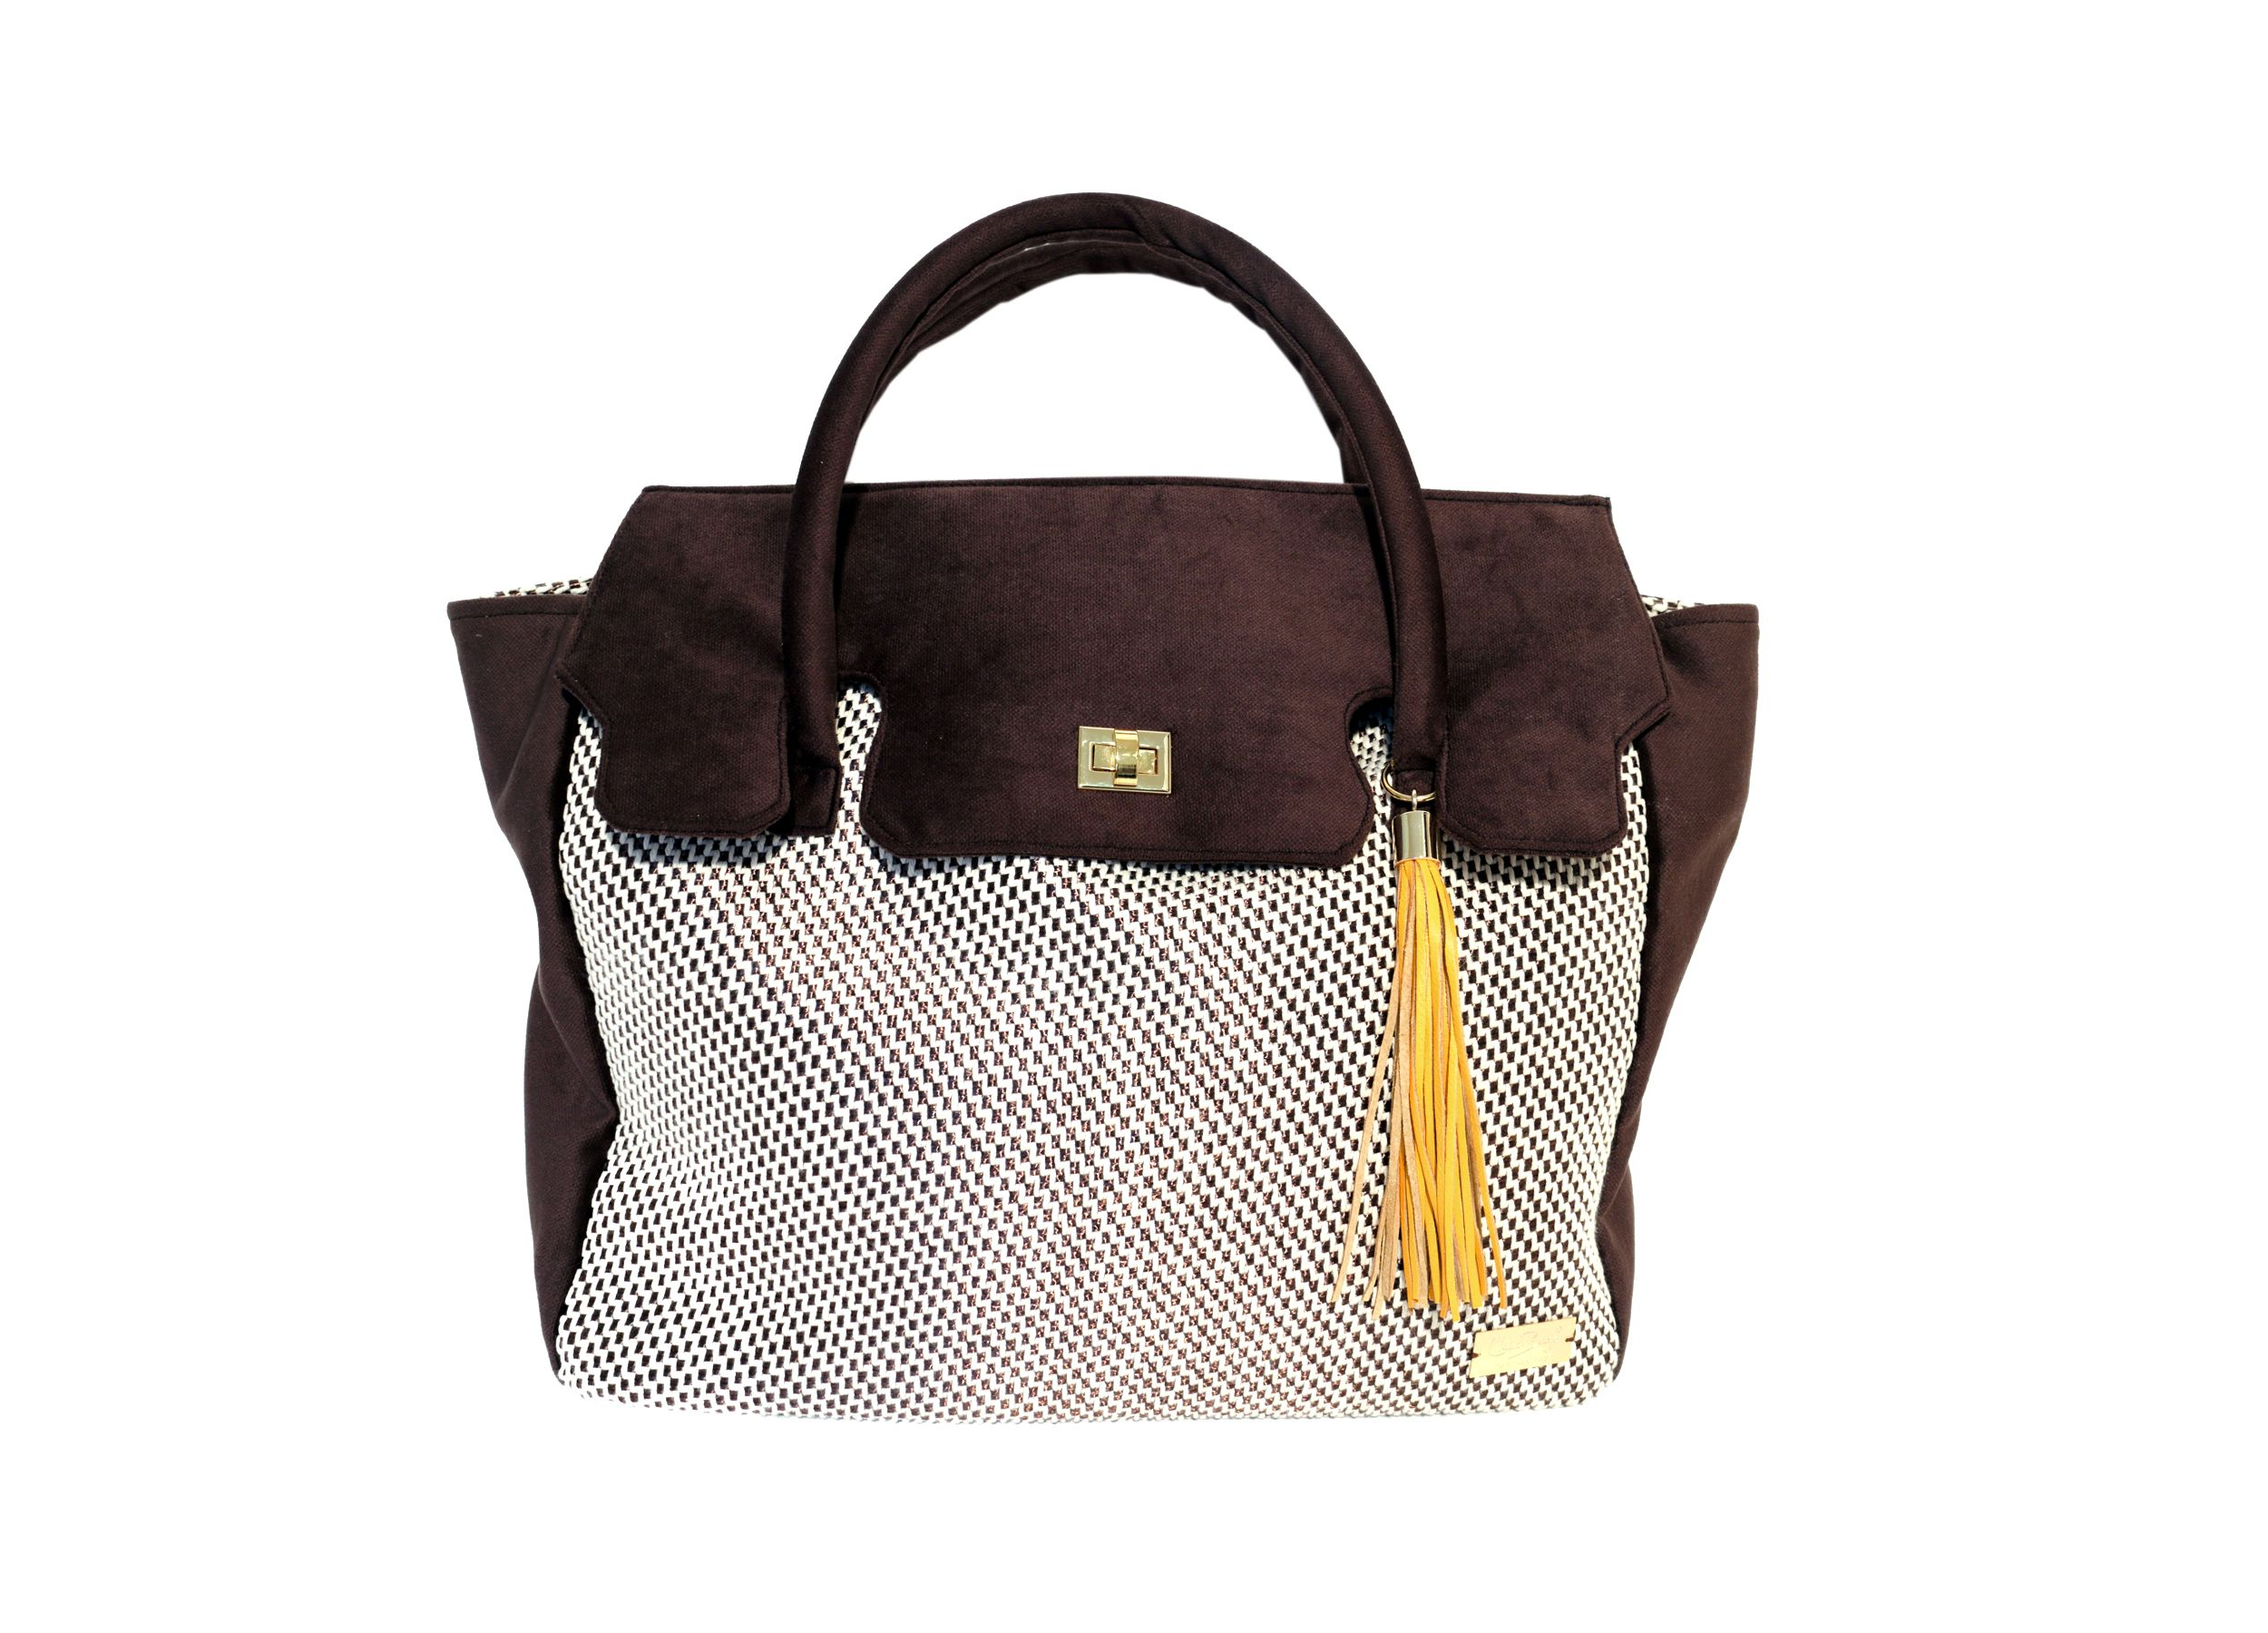 Kelly Brown Original Handmade Bags Made In Italy Chixbags It Info